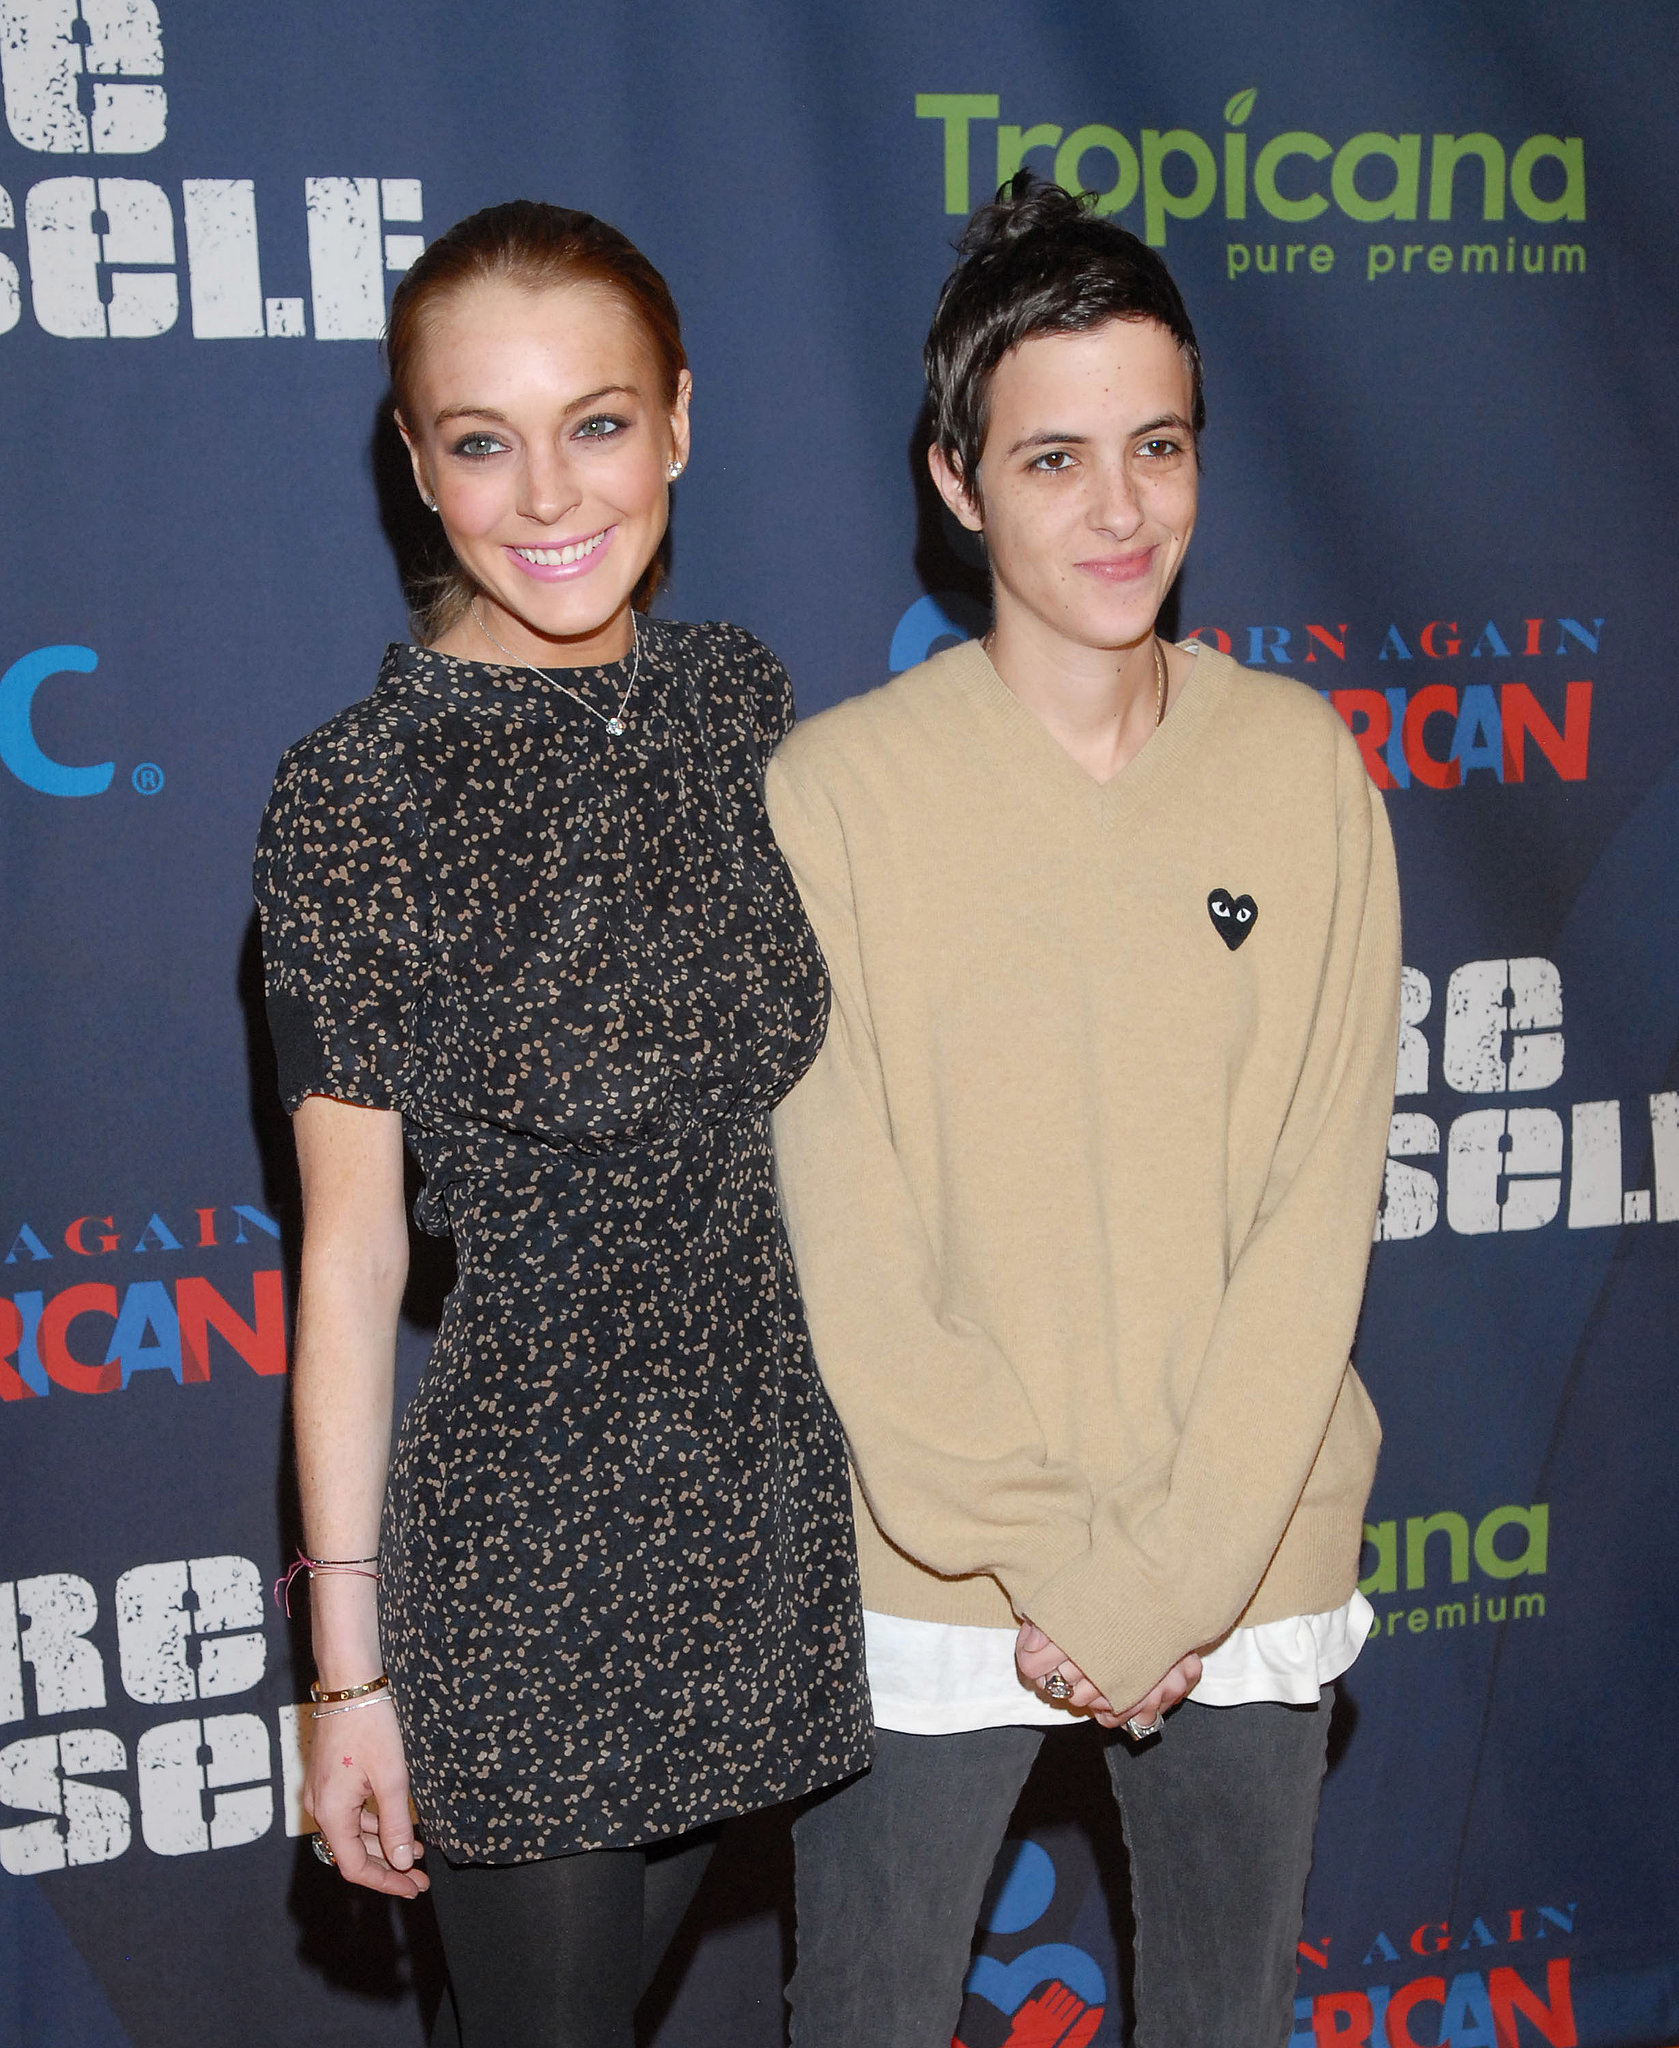 For a while there, it looked like she found true love in Samantha Ronson. She showed us how committed she could be.